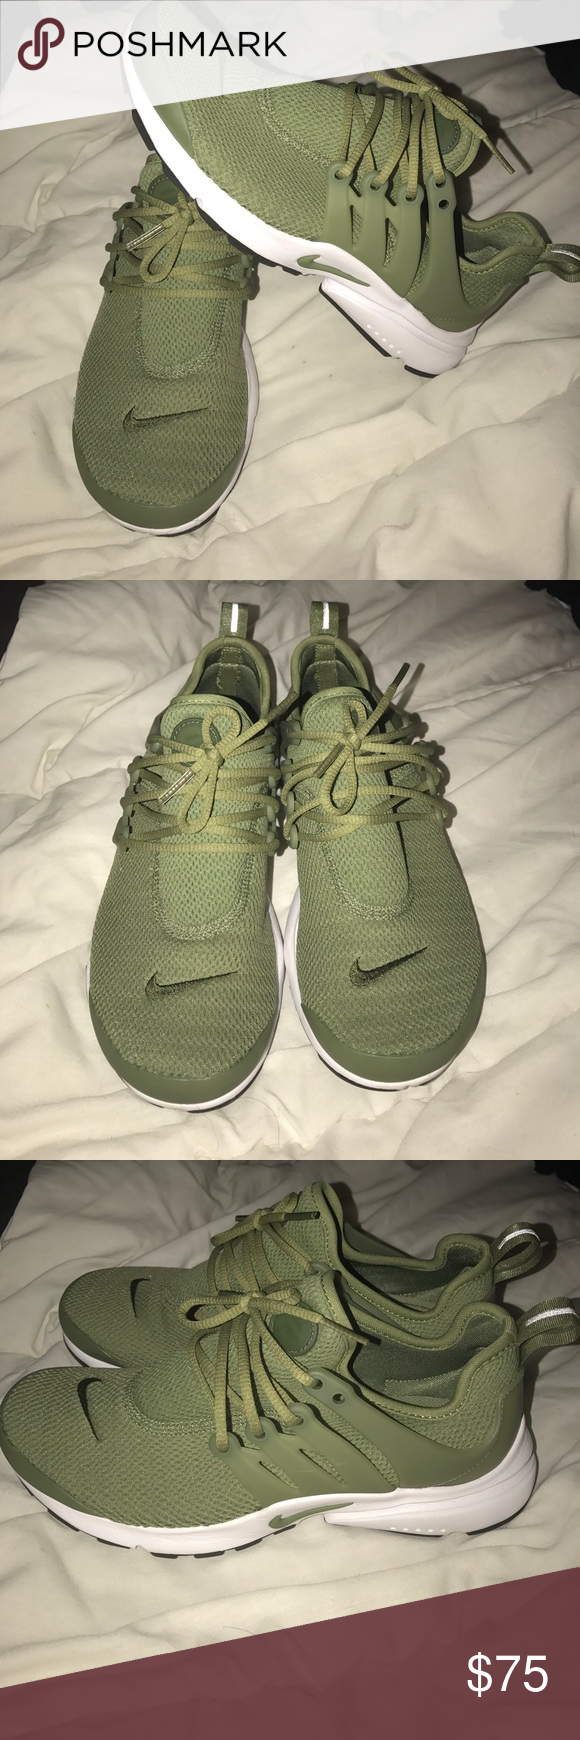 new style d4e27 25108 Women's Nike Air presto Beautiful olive green air prestos ...